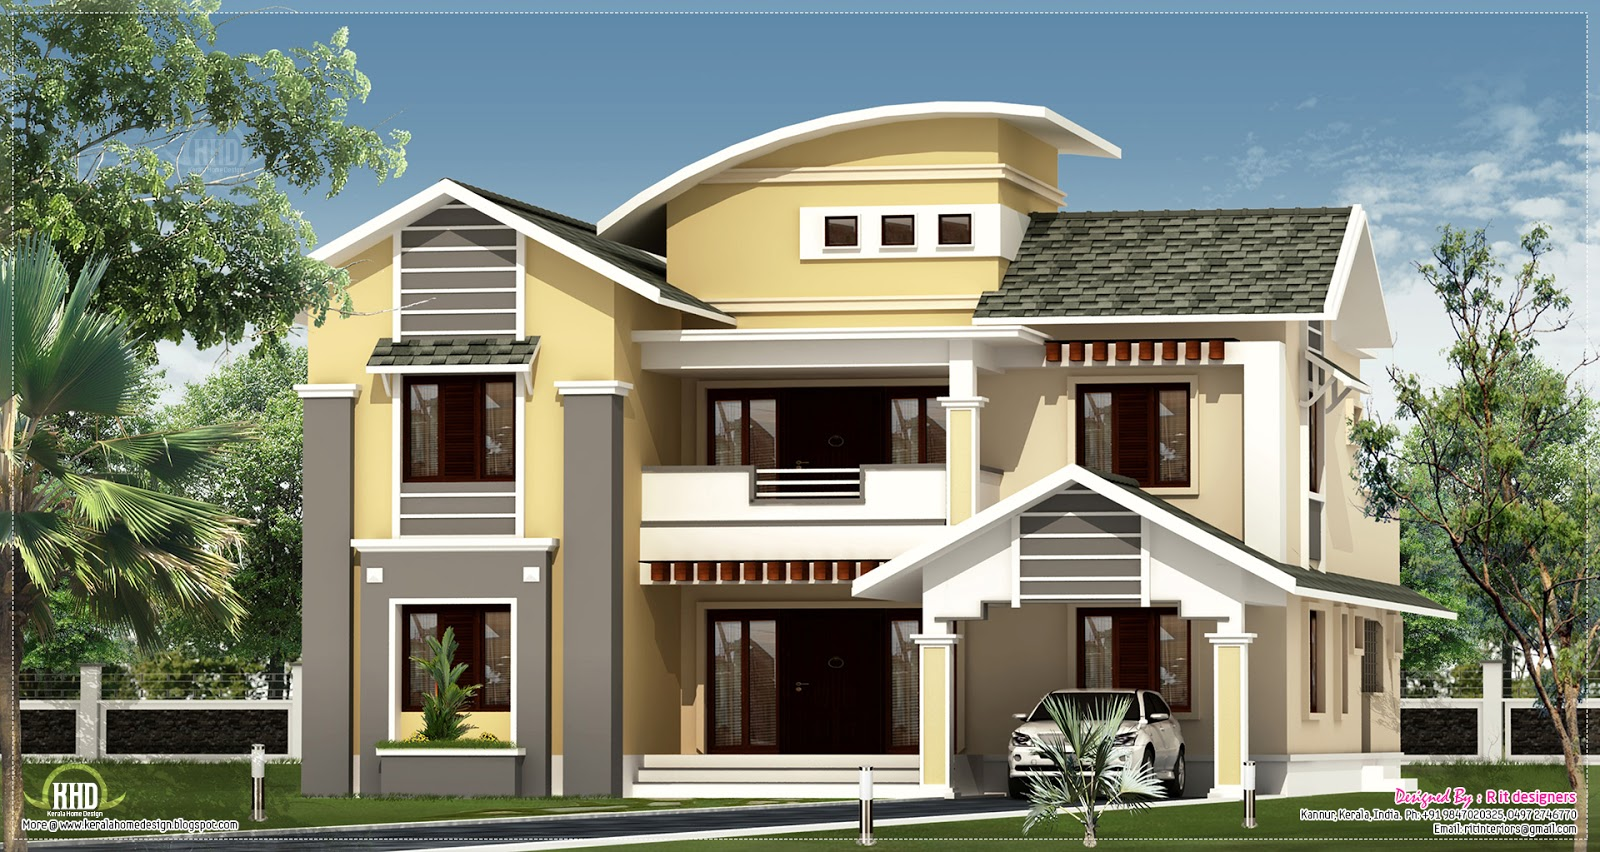 April 2013 kerala home design and floor plans for Small villa plans in kerala